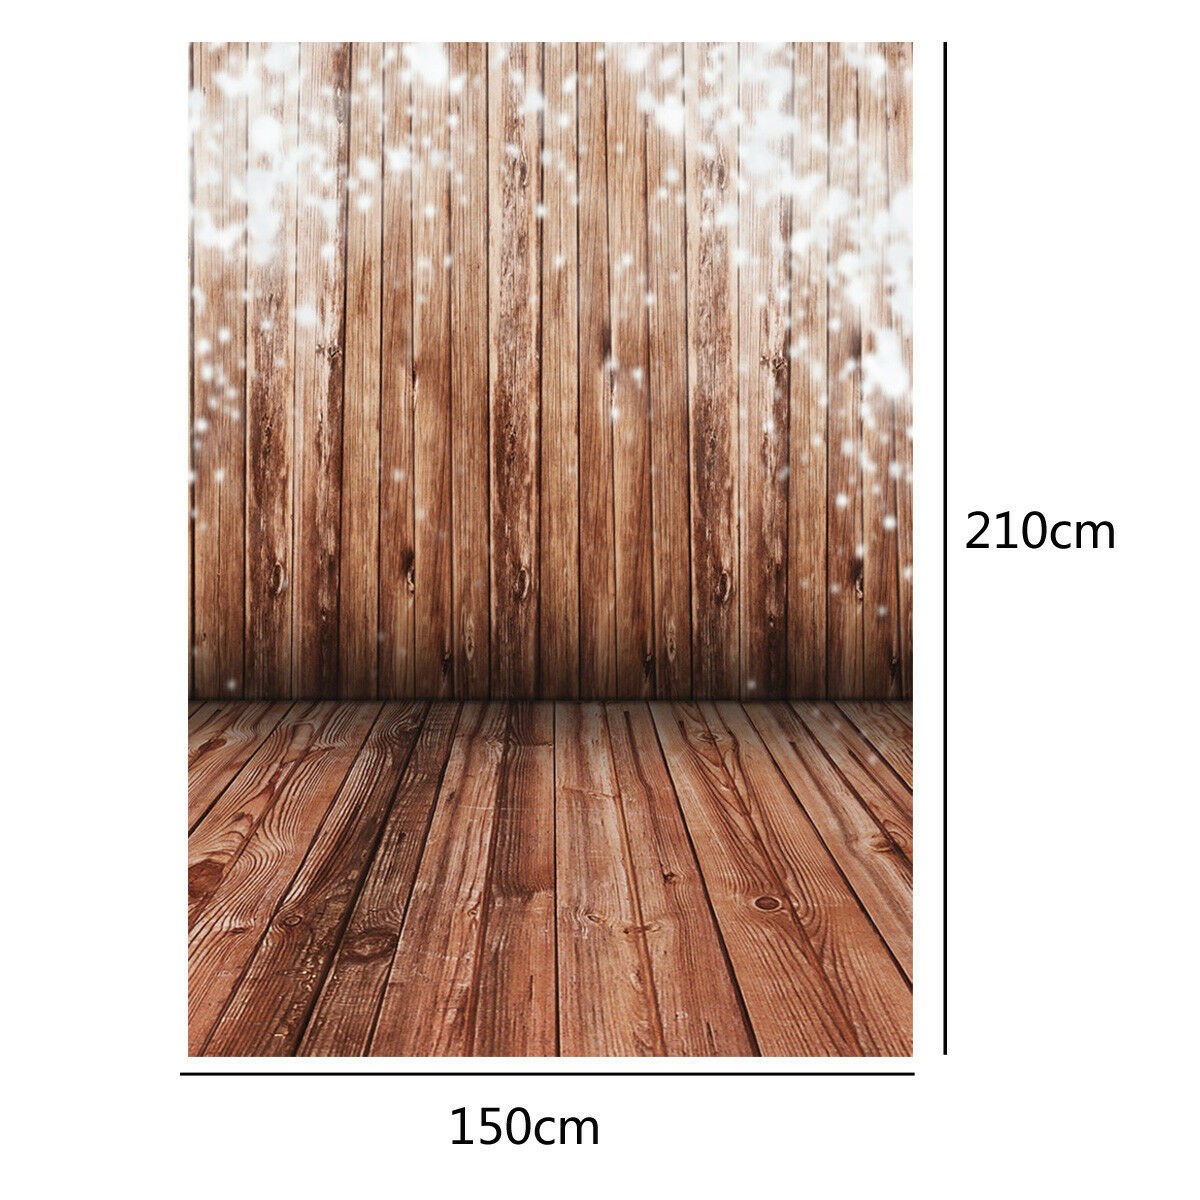 5x7FT Wood Wall Vinyl Photography Backdrop Photo Background Studio Props Decor